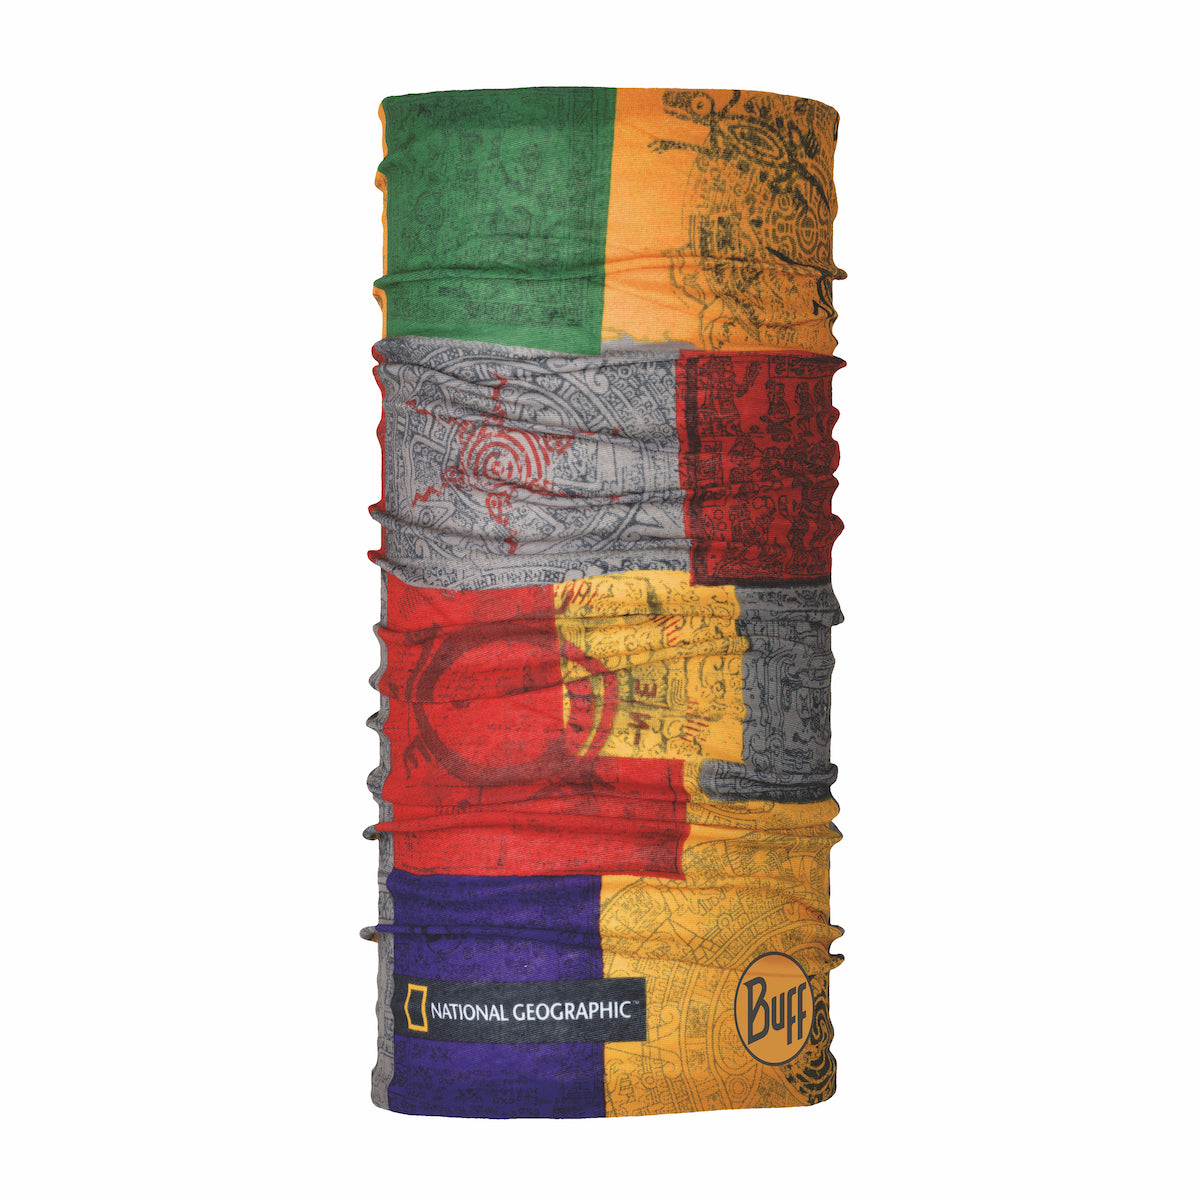 Buff Original Licenses Neckwear - National Geographic Temple image